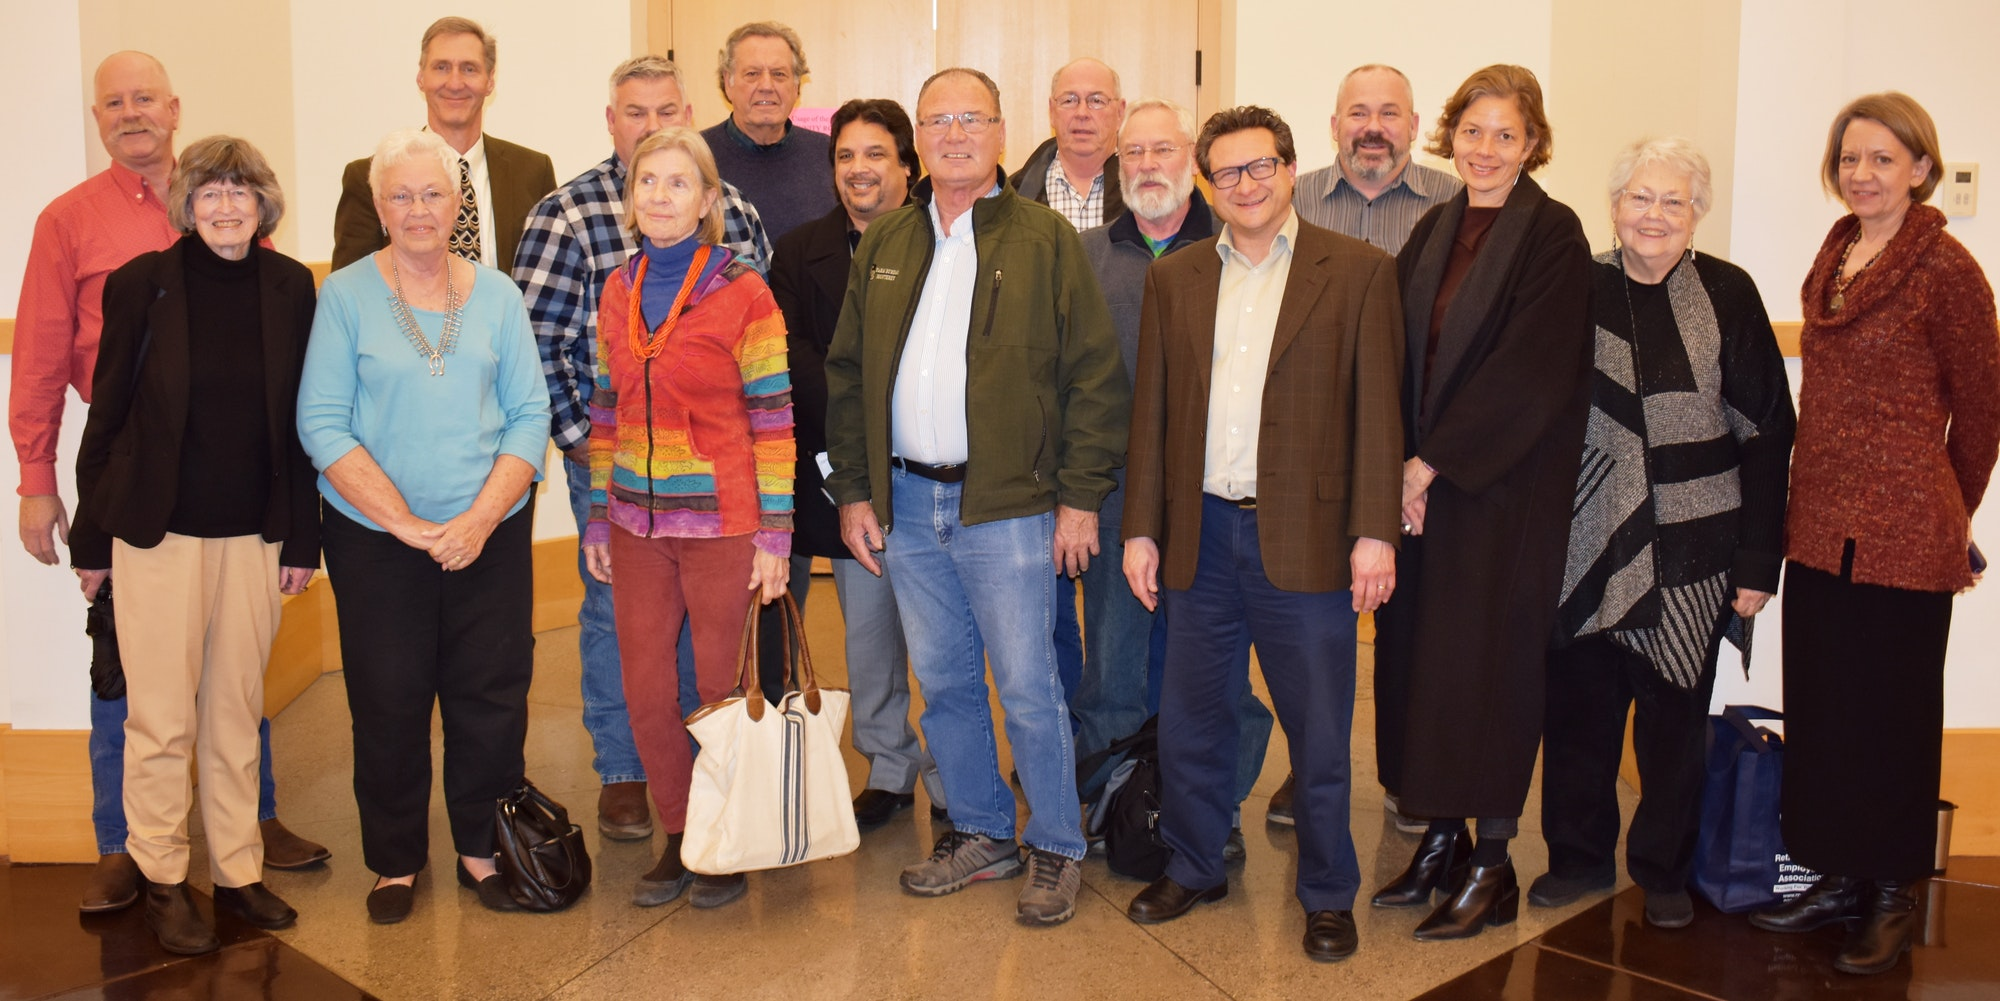 Members of the Measure  X committee members standing together in a group photo in the lobby of the Marina Branch Library